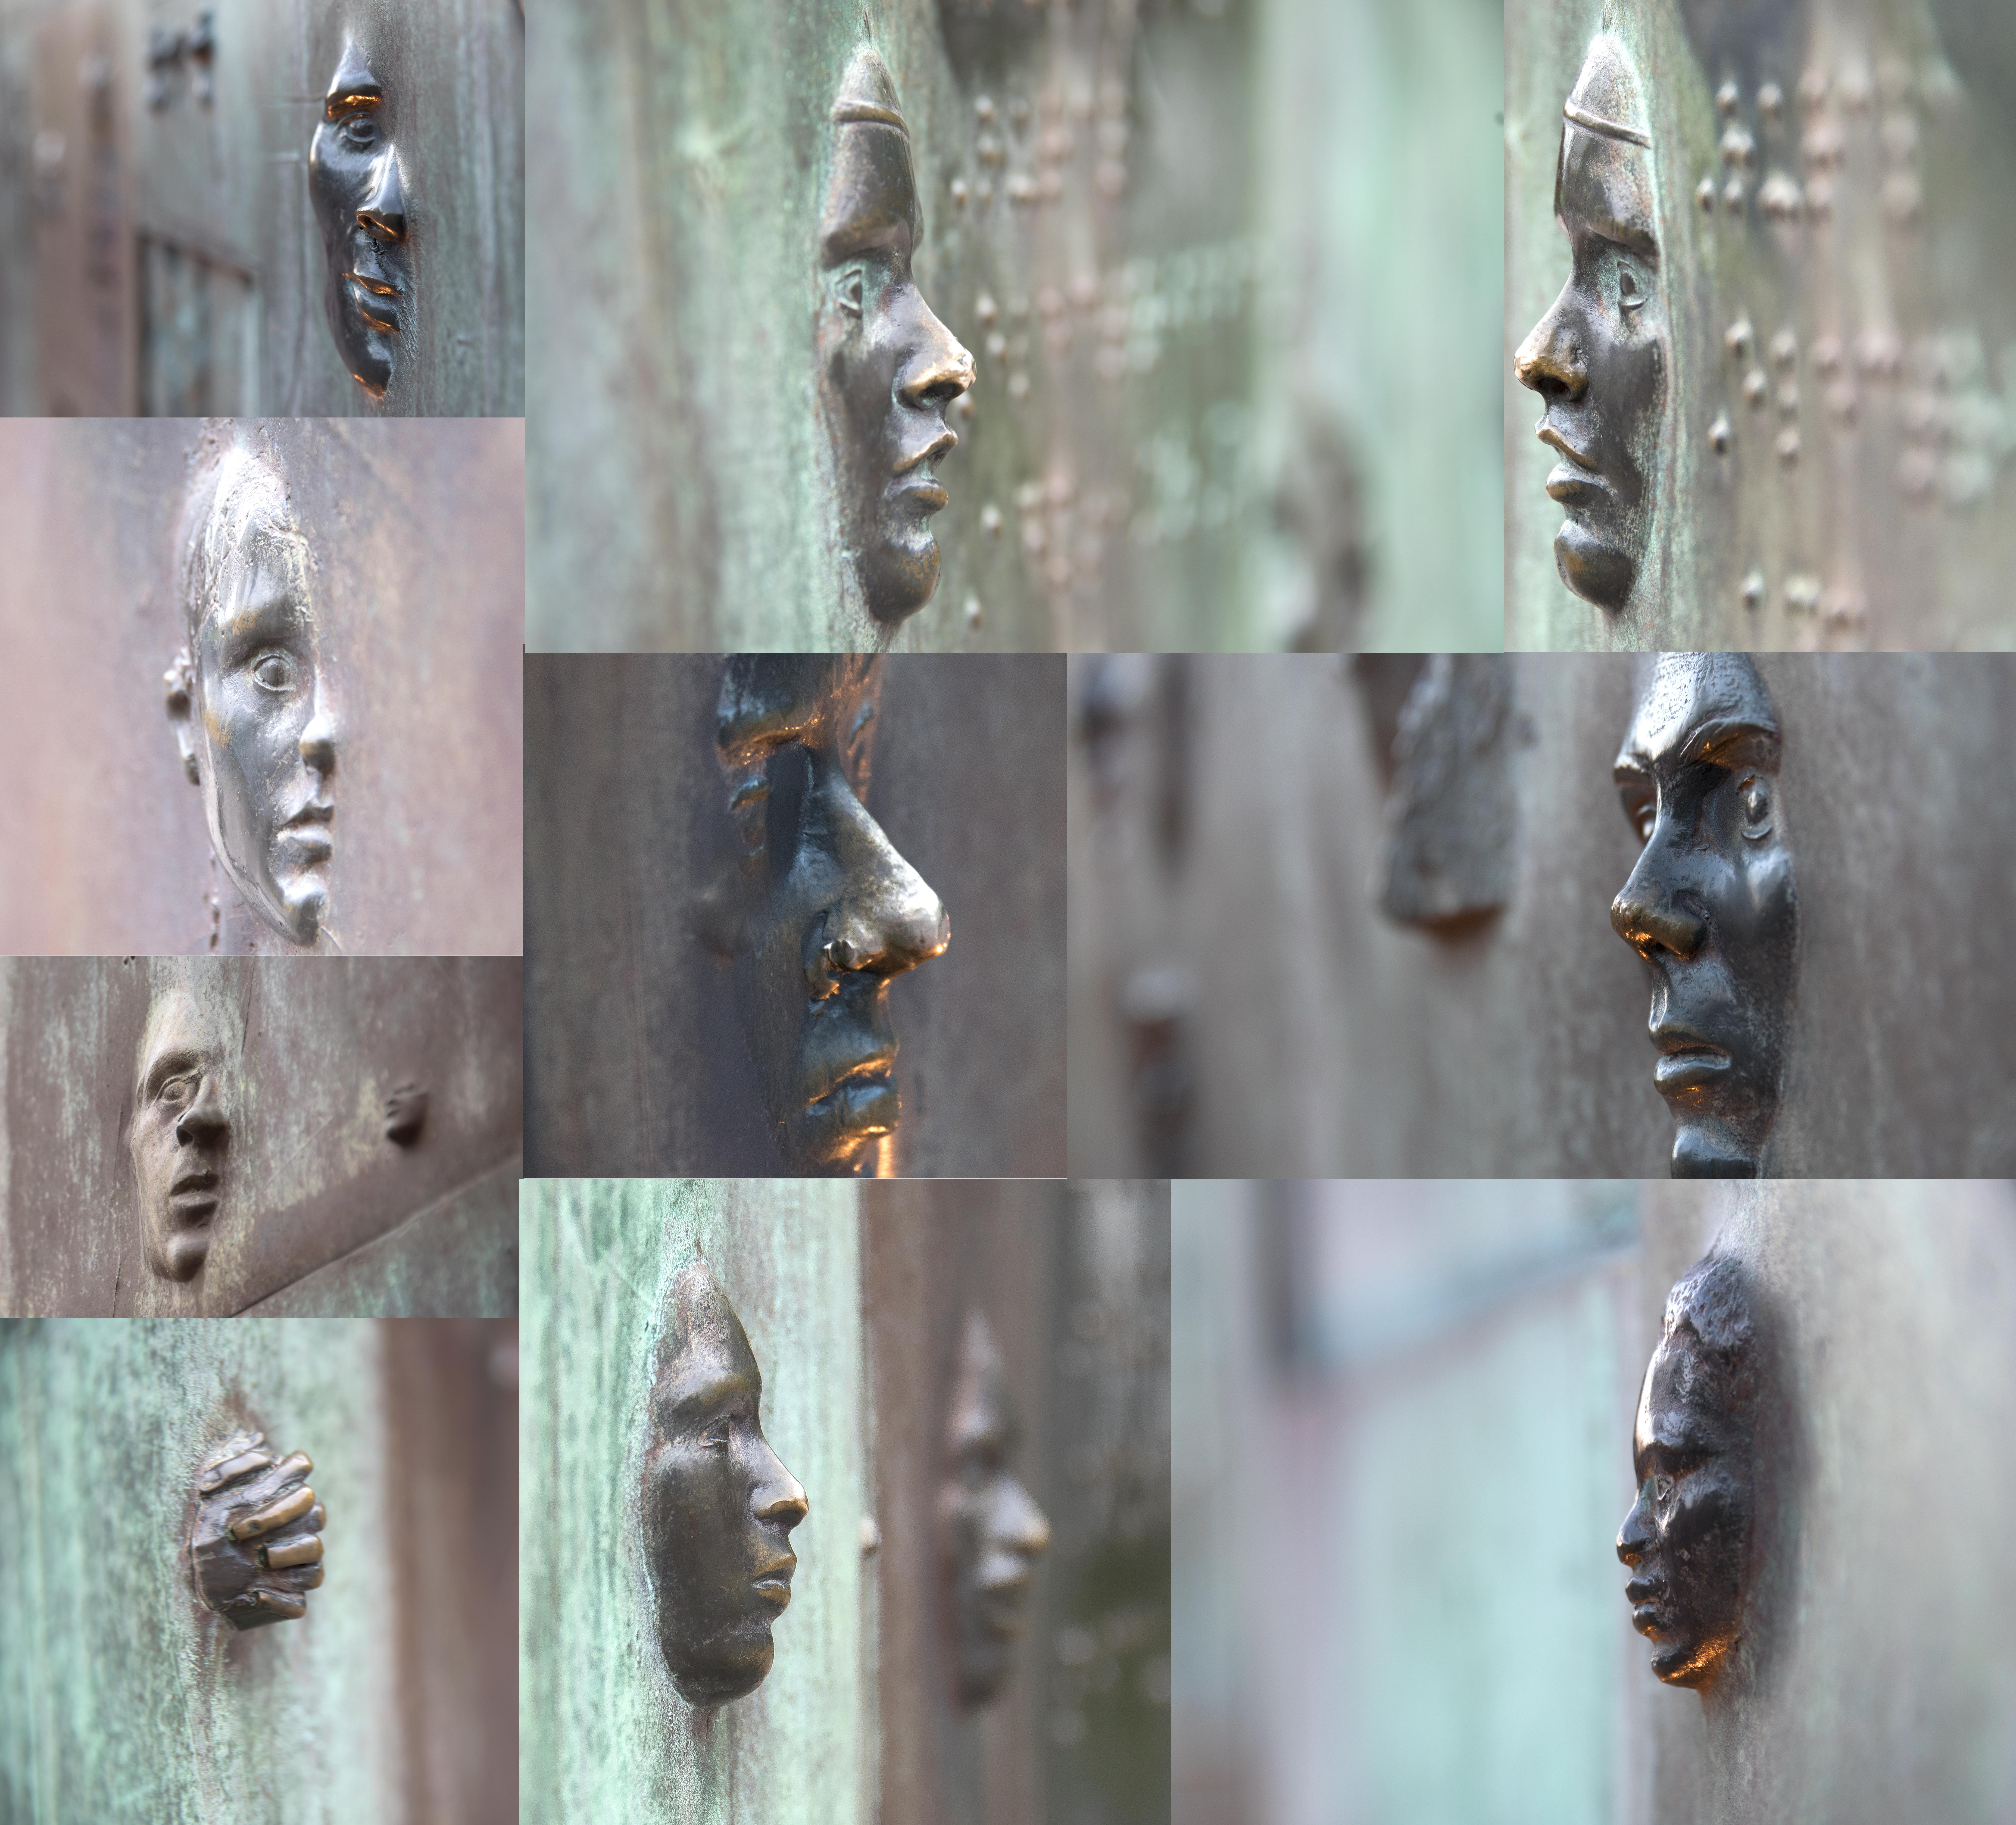 Roosevelt monument faces in wall